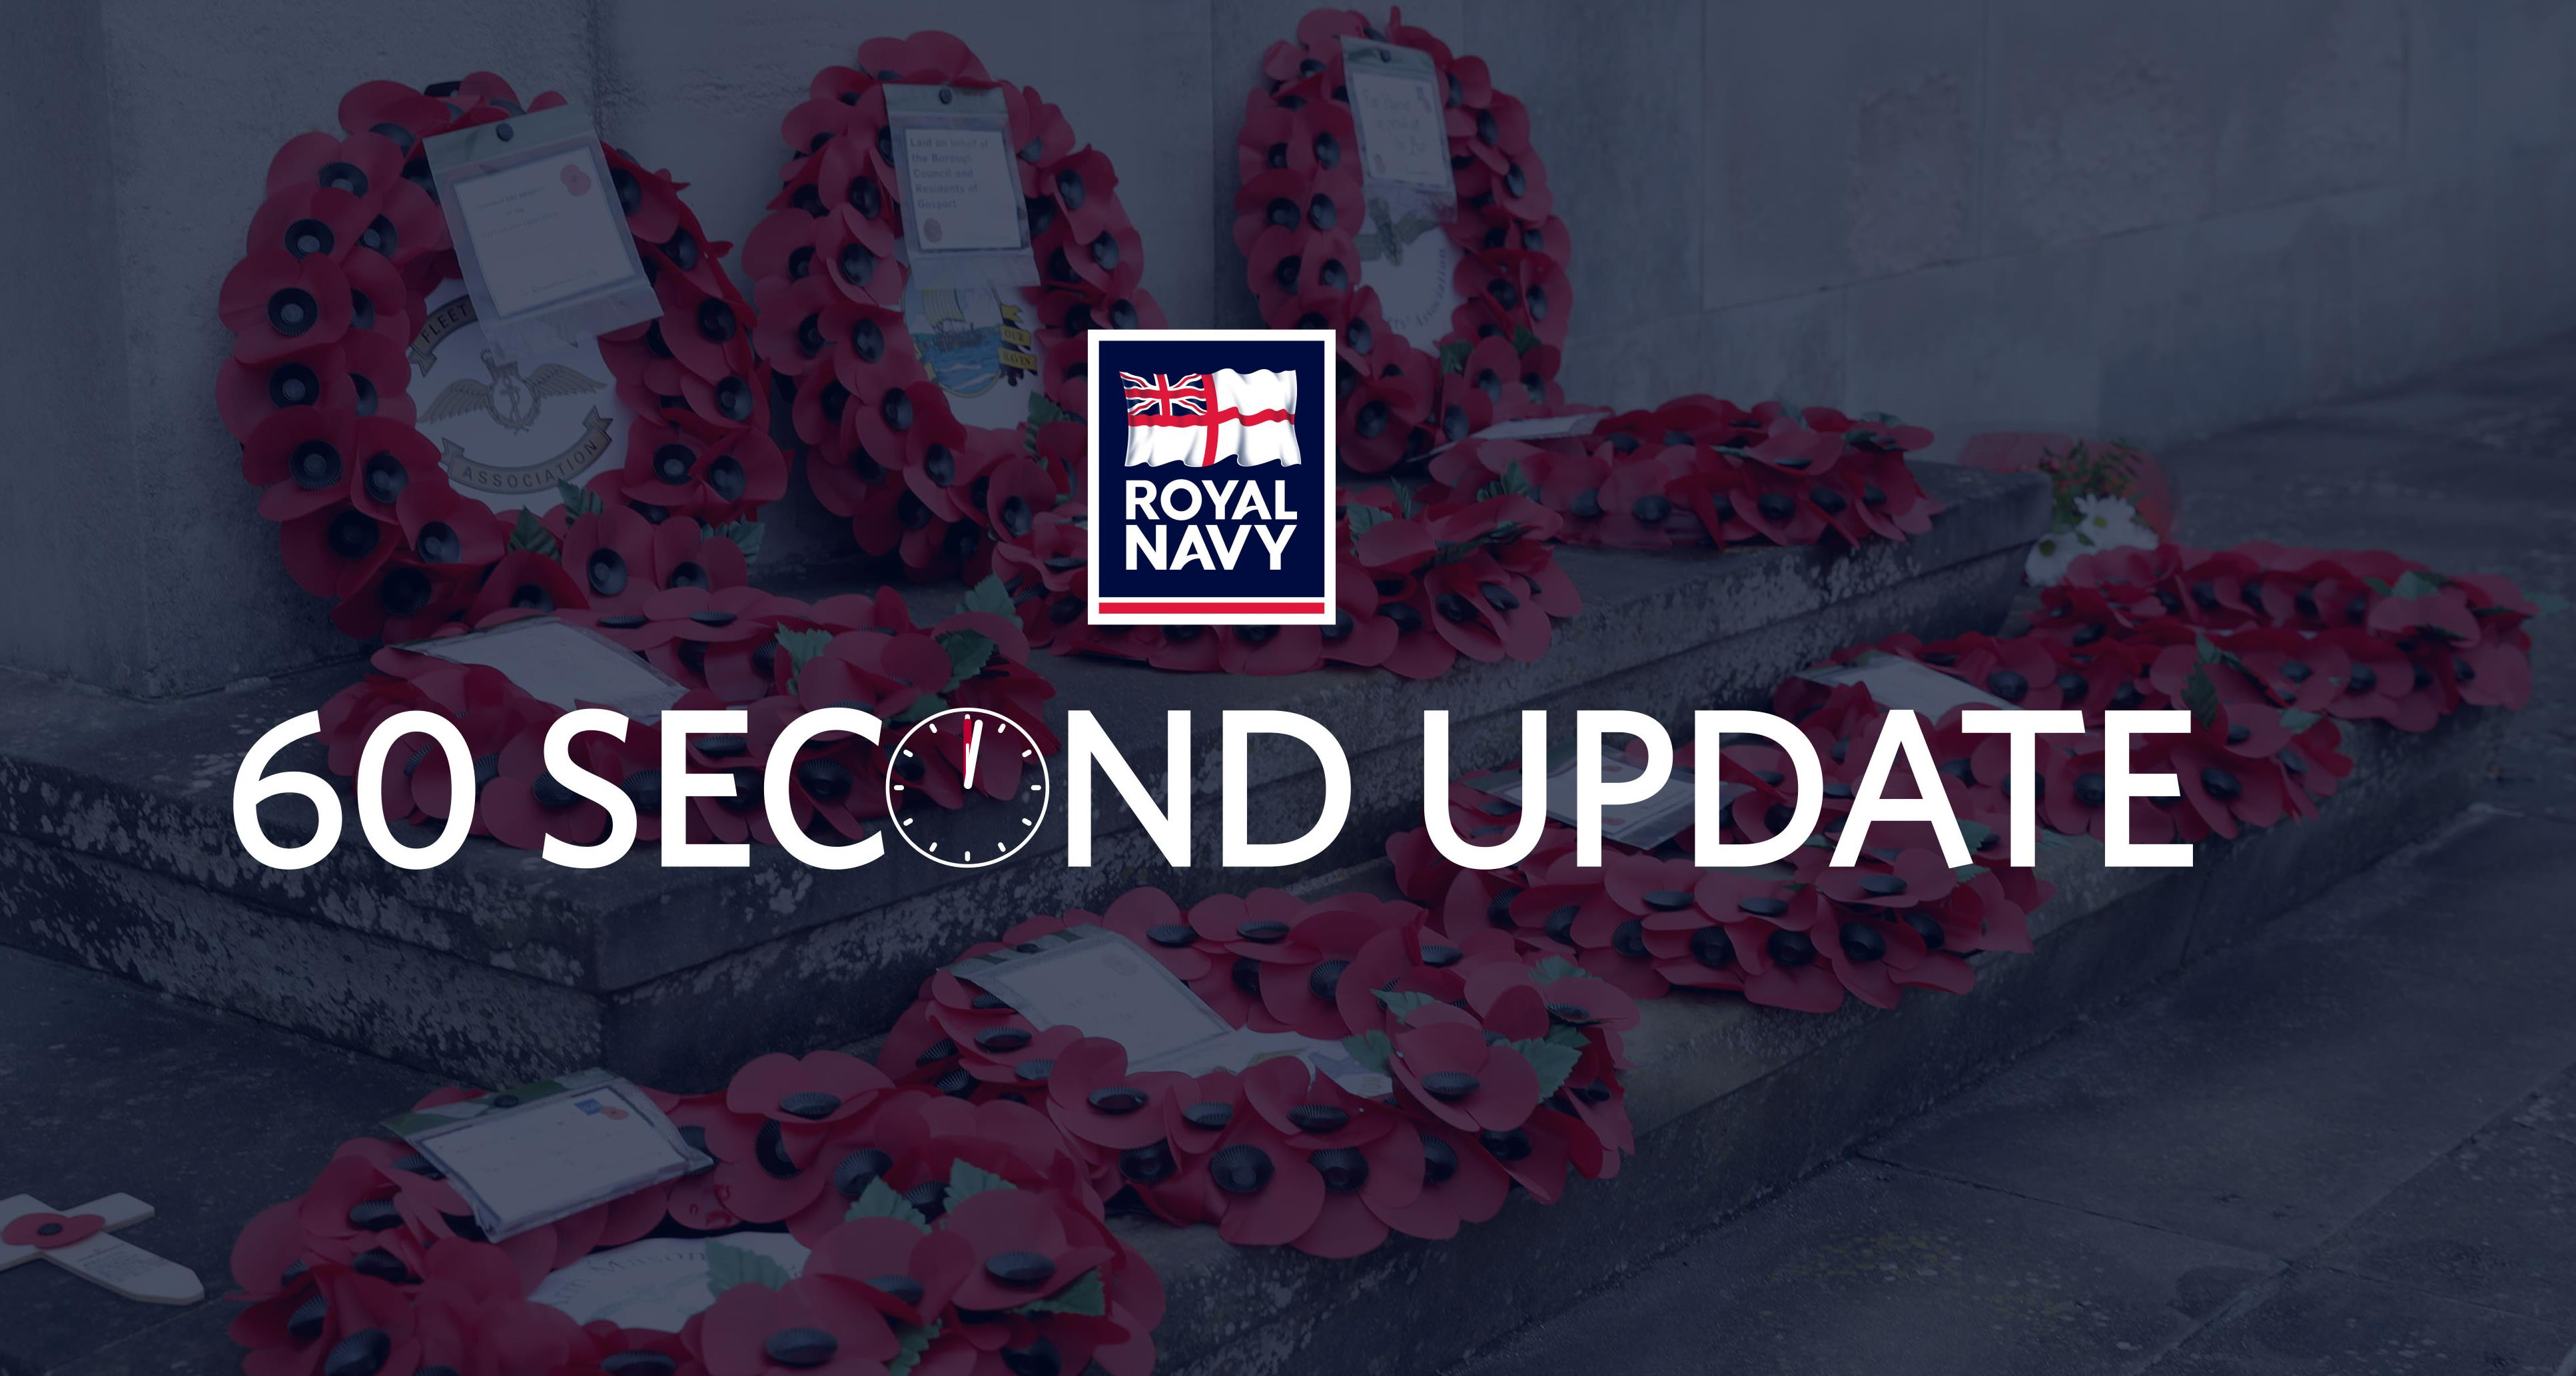 60 second update from across the Royal Navy